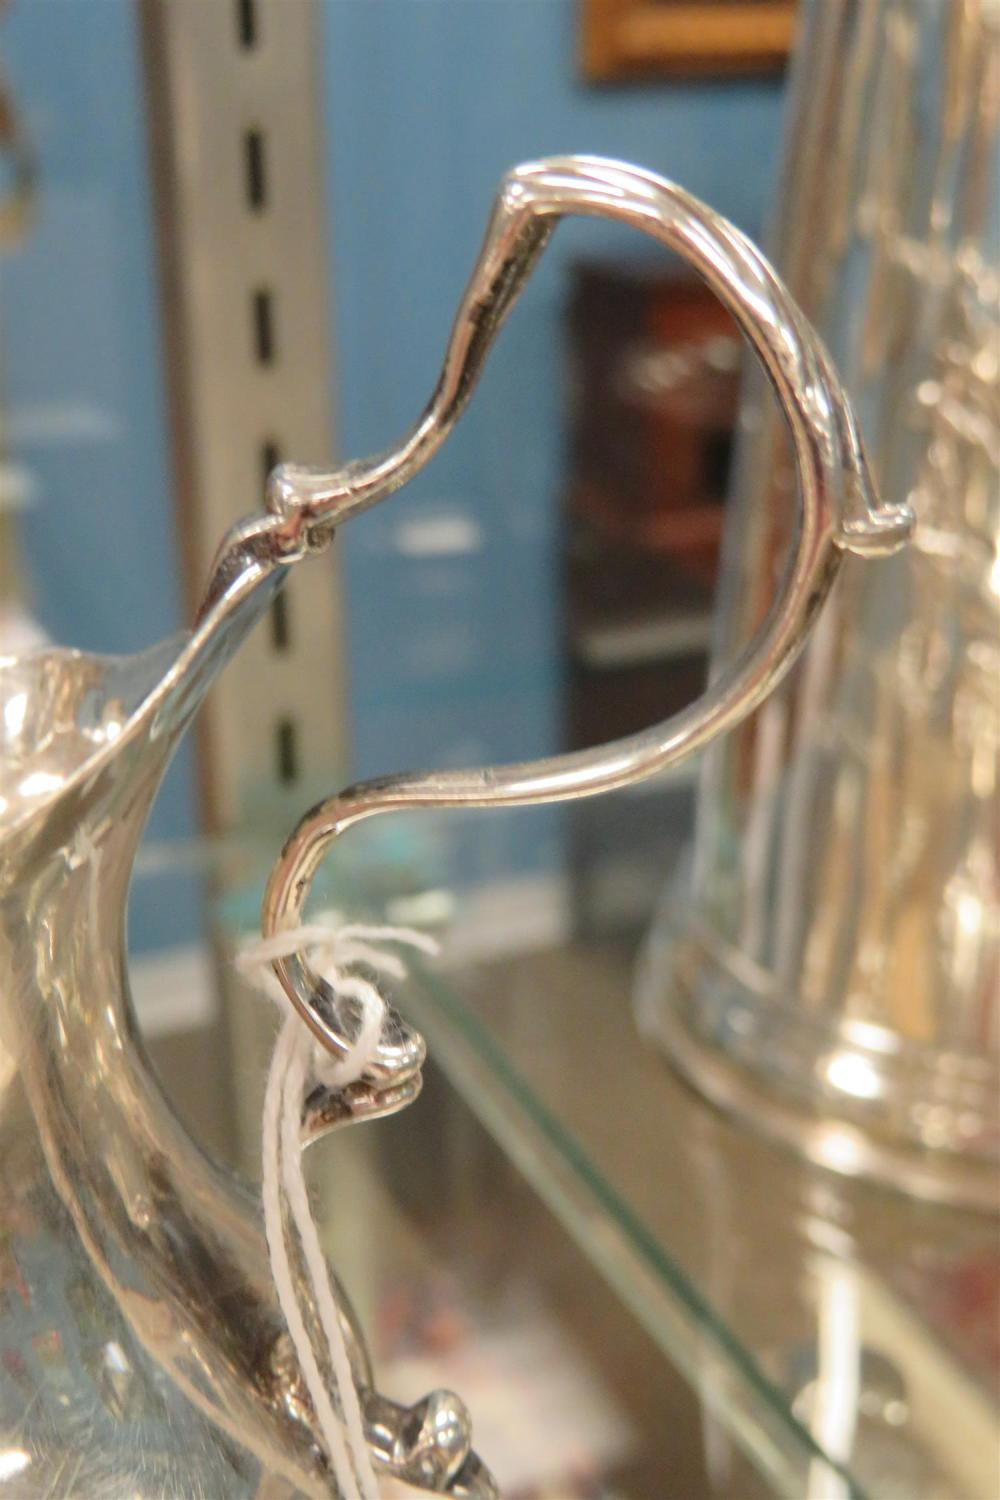 George III silver pitcher by Hester Bateman